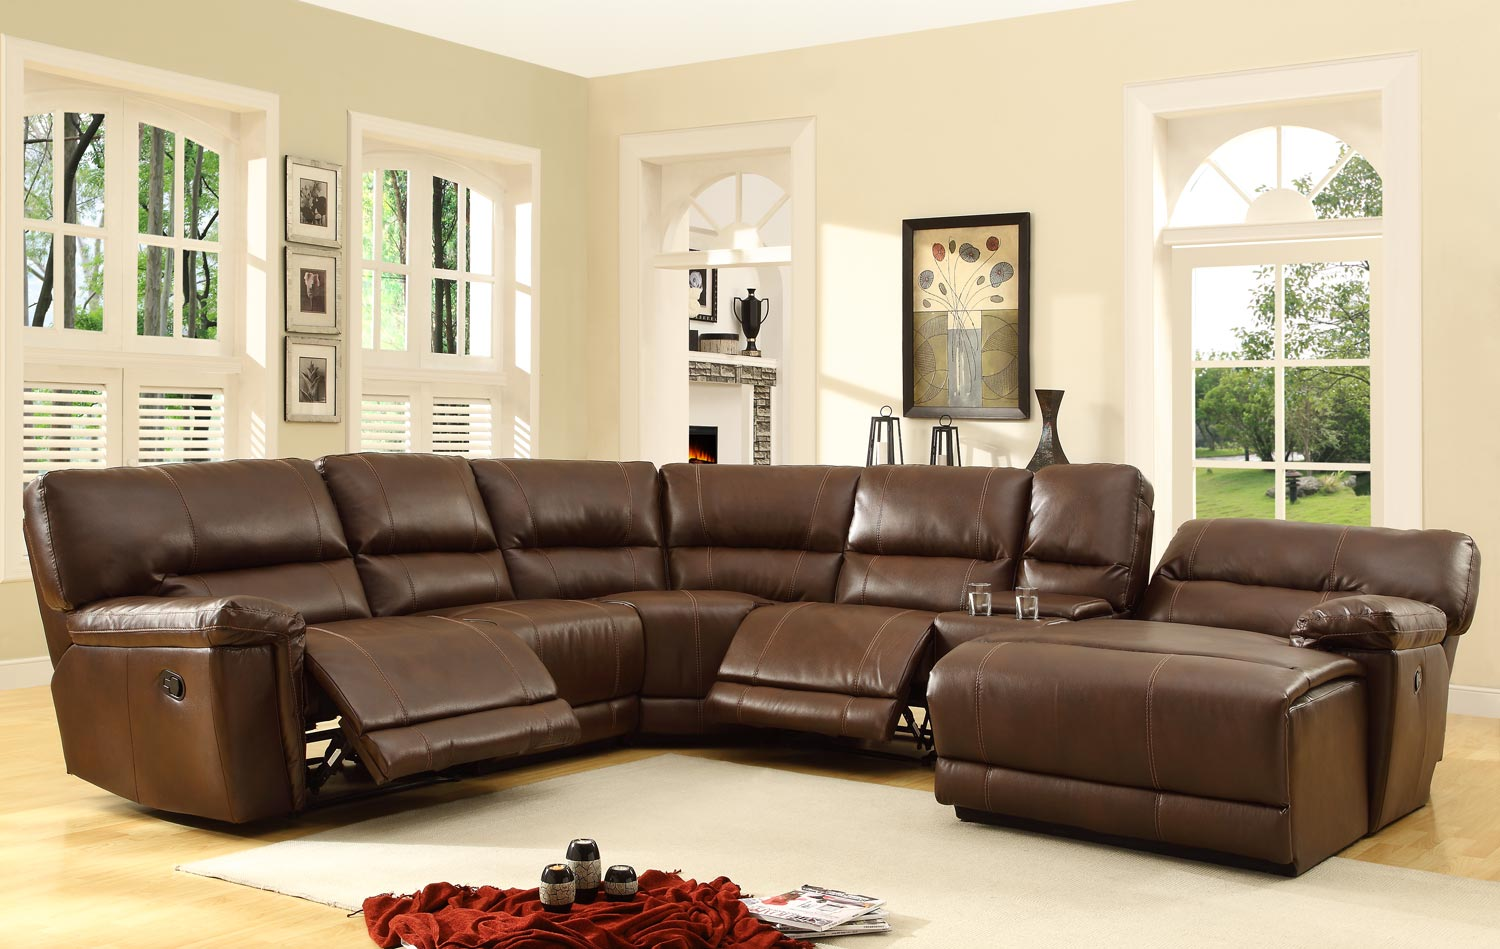 Homelegance Blythe Sectional Sofa Set - Brown - Bonded Leather